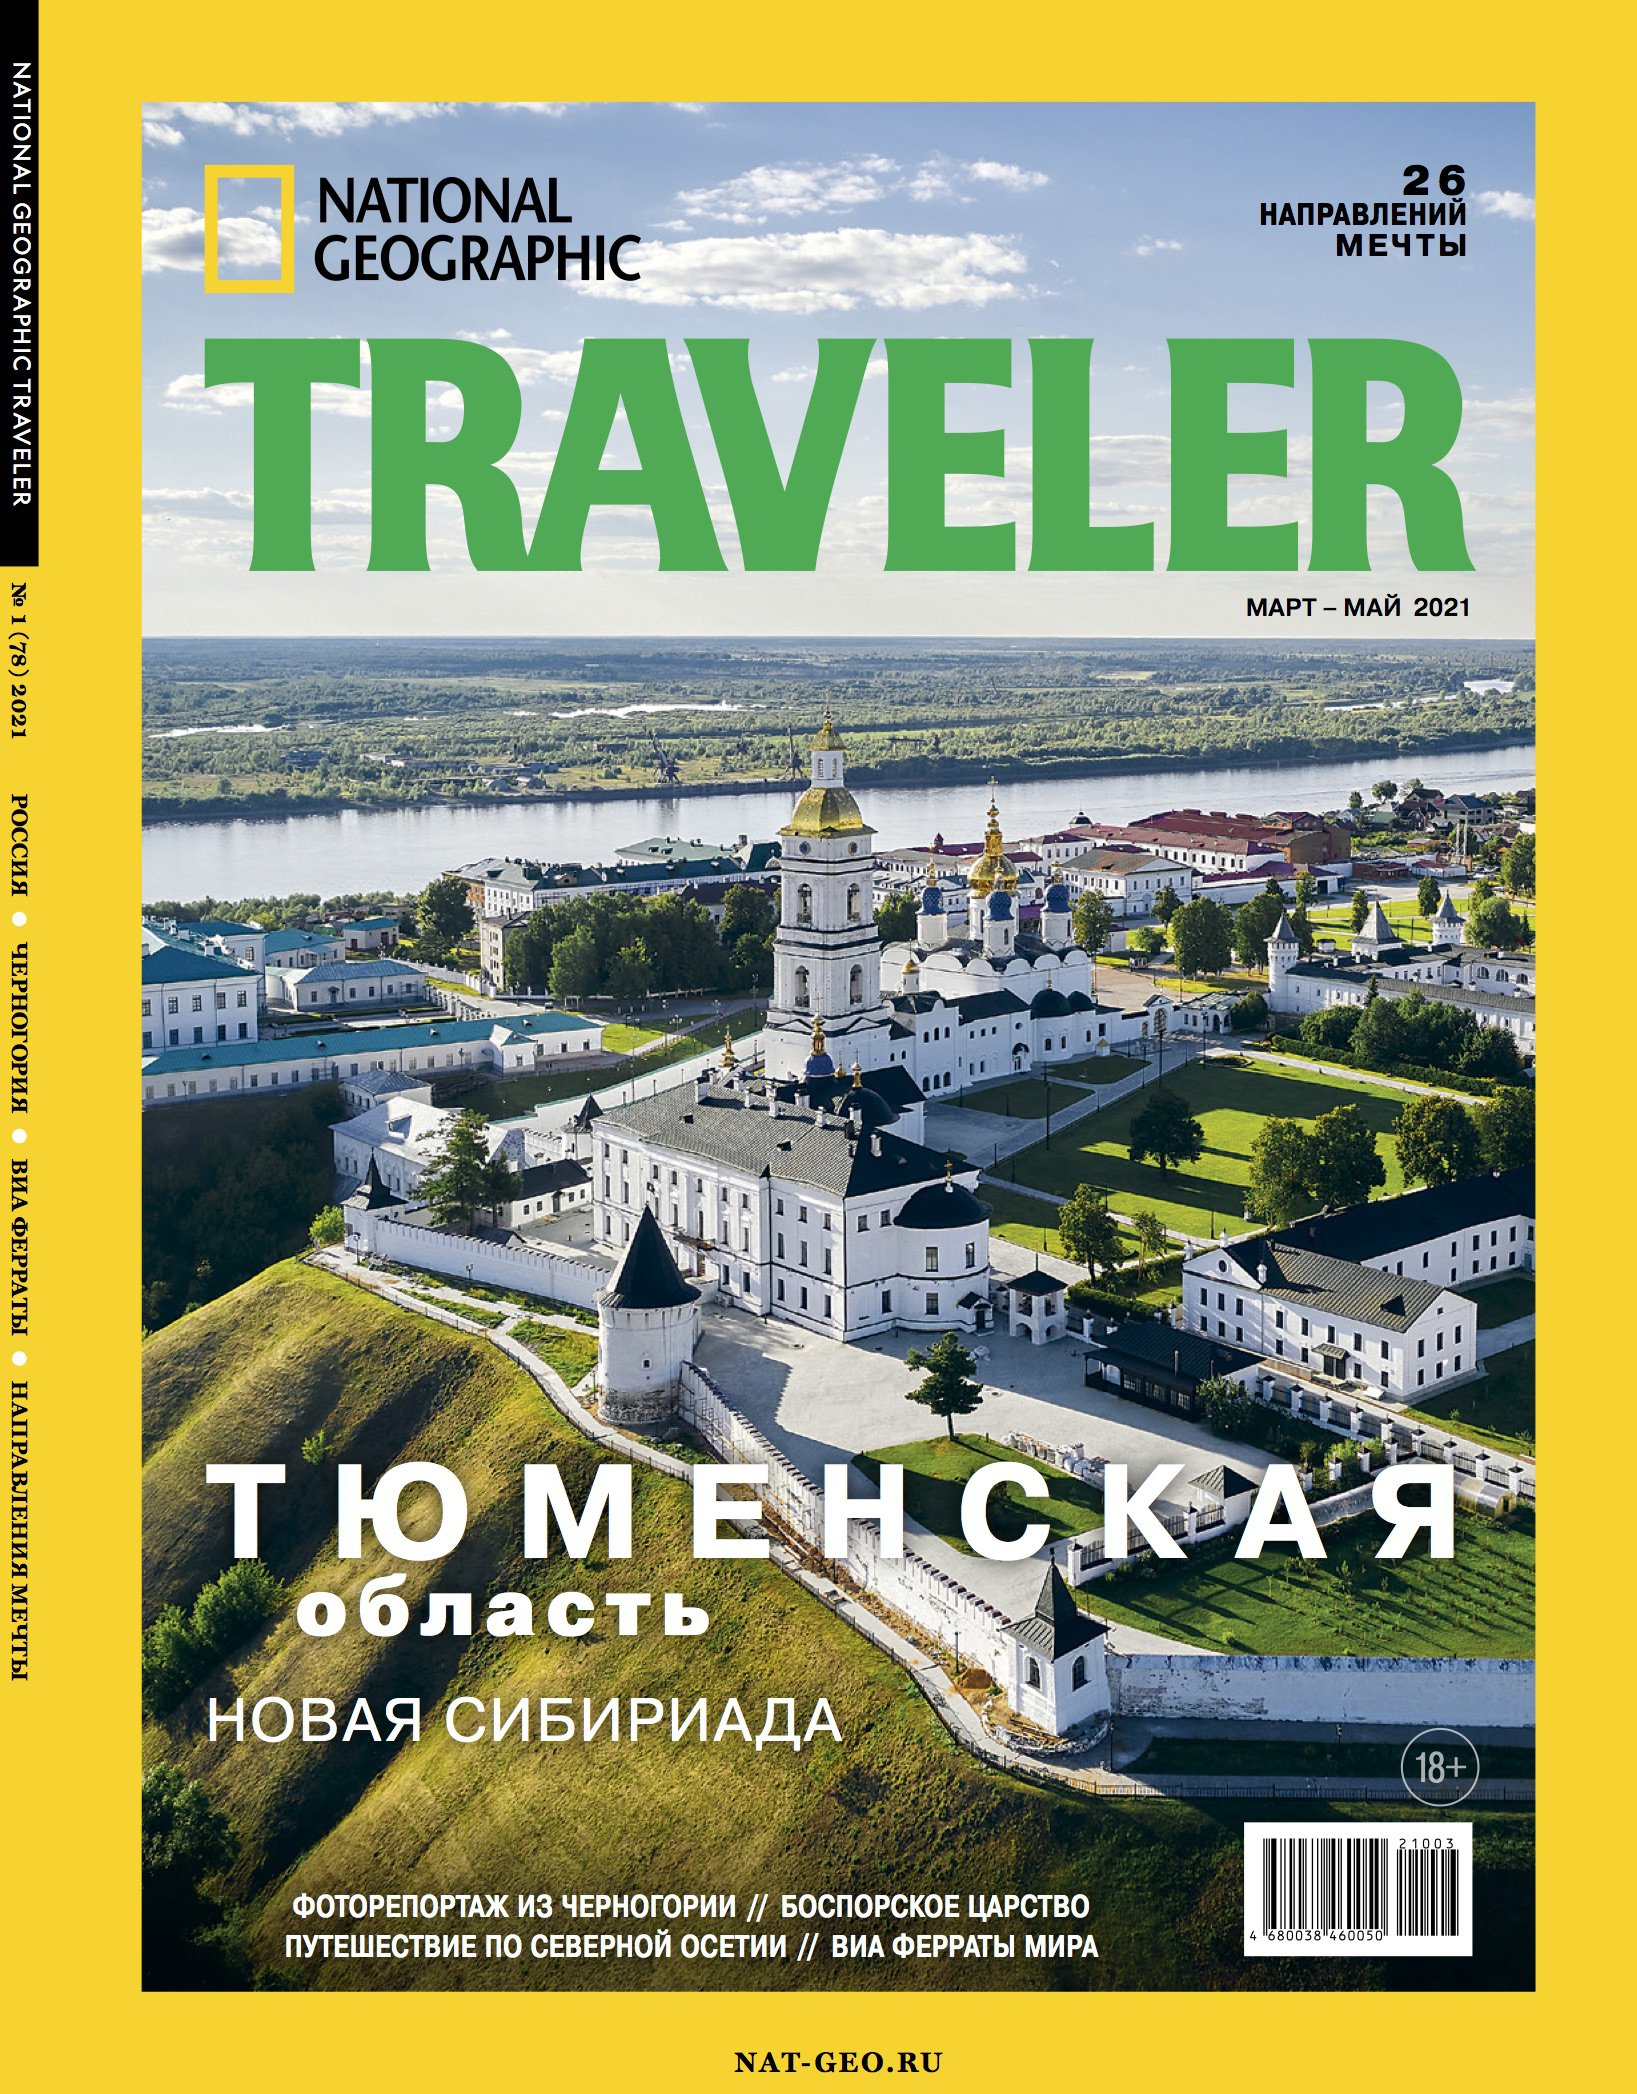 National Geographic Traveler № 78, март – май 2021